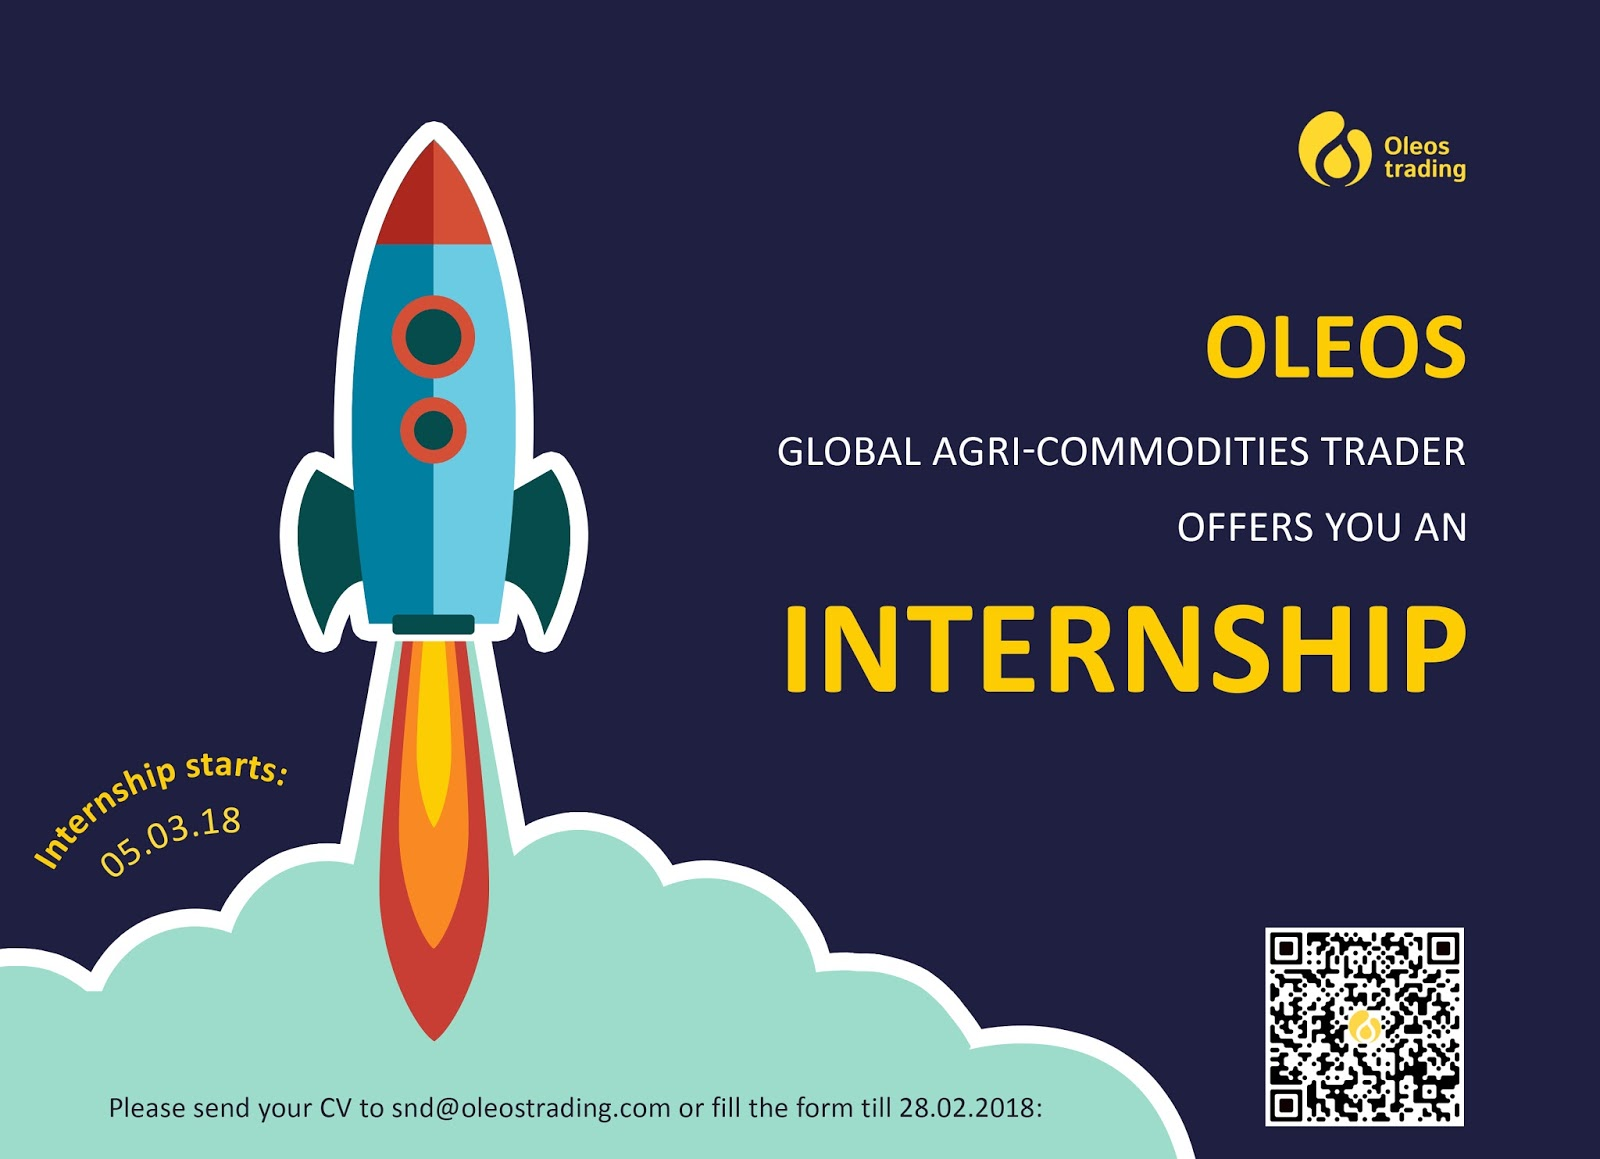 OLEOS TRADING offers you an INTERNSHIP.